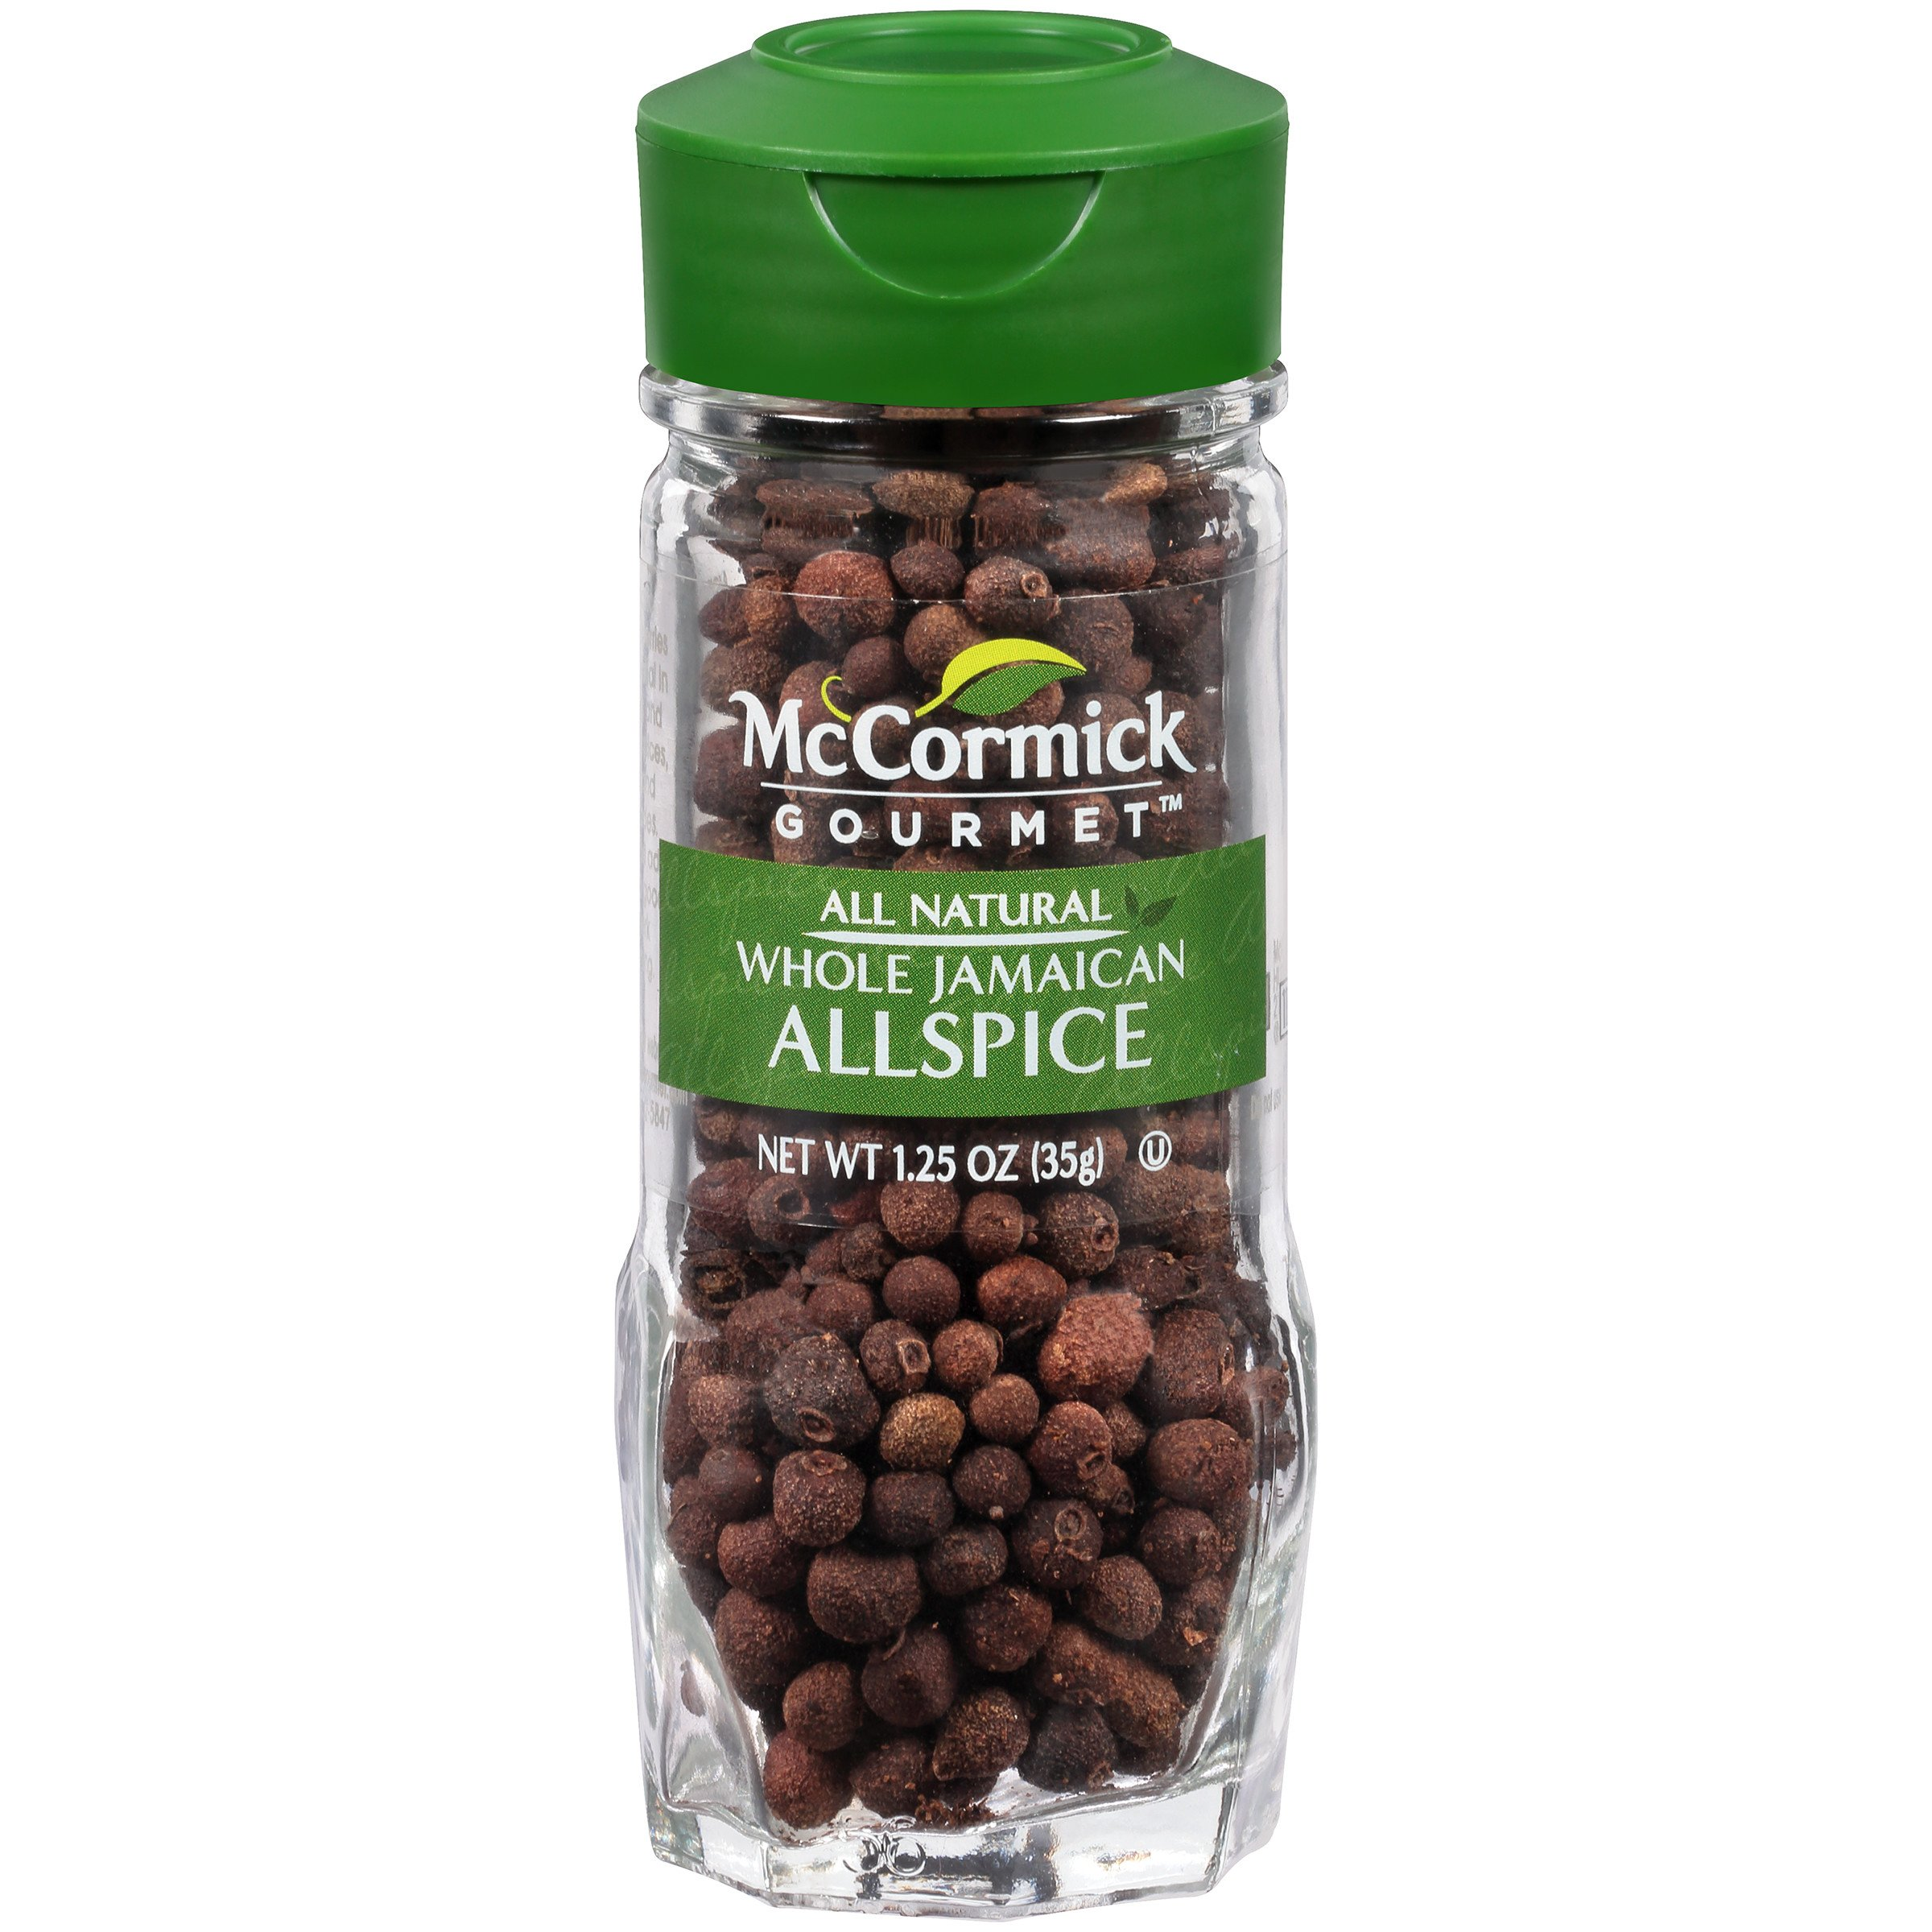 McCormick Gourmet Whole Jamaican Allspice, 1.25 oz (Pack of 3)